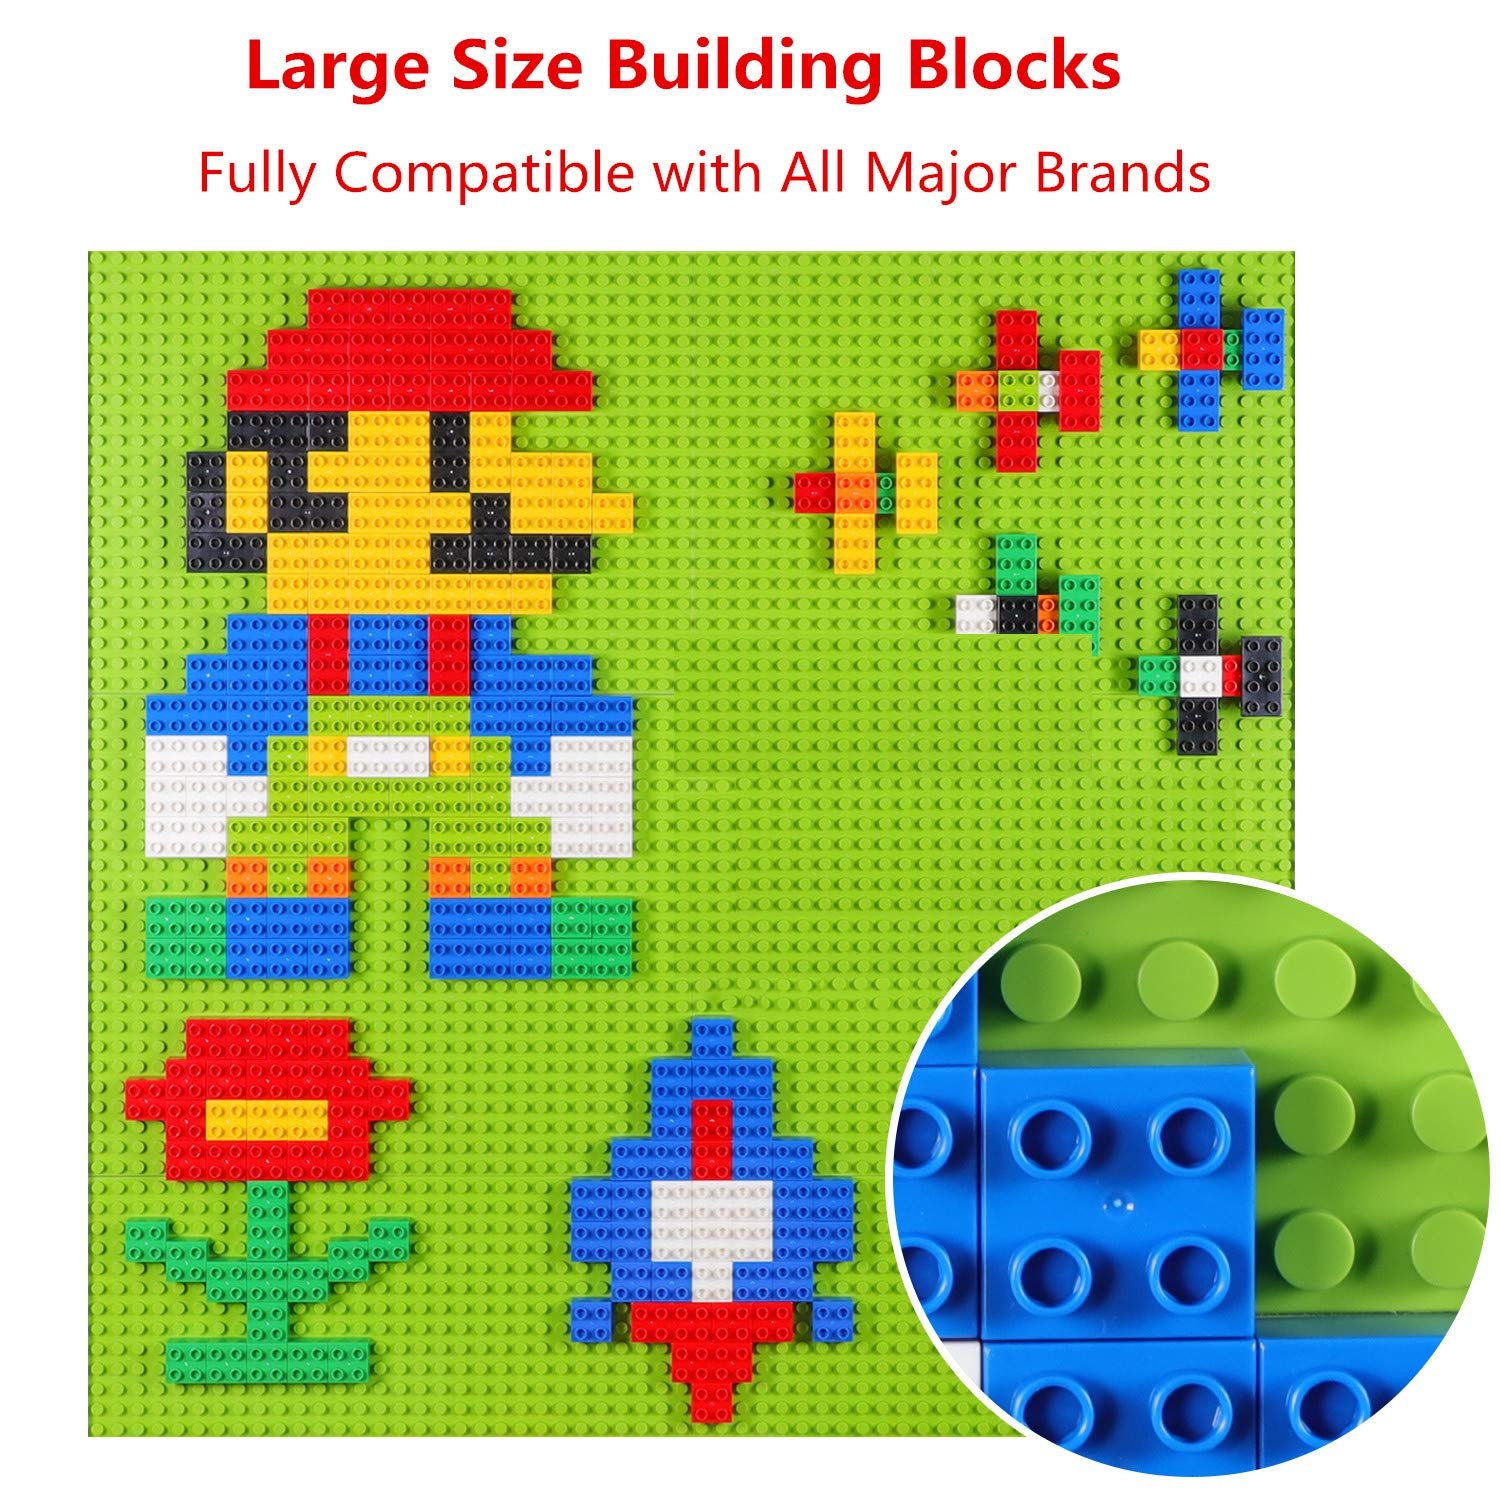 burgkidz Big Building Block Sets - 214 Pieces Toddler Educational Toy Classic Large Sizes Building Blocks Bricks - 13 Fun Shapes and Storage Bucket - Compatible with All Major Brands by burgkidz (Image #4)